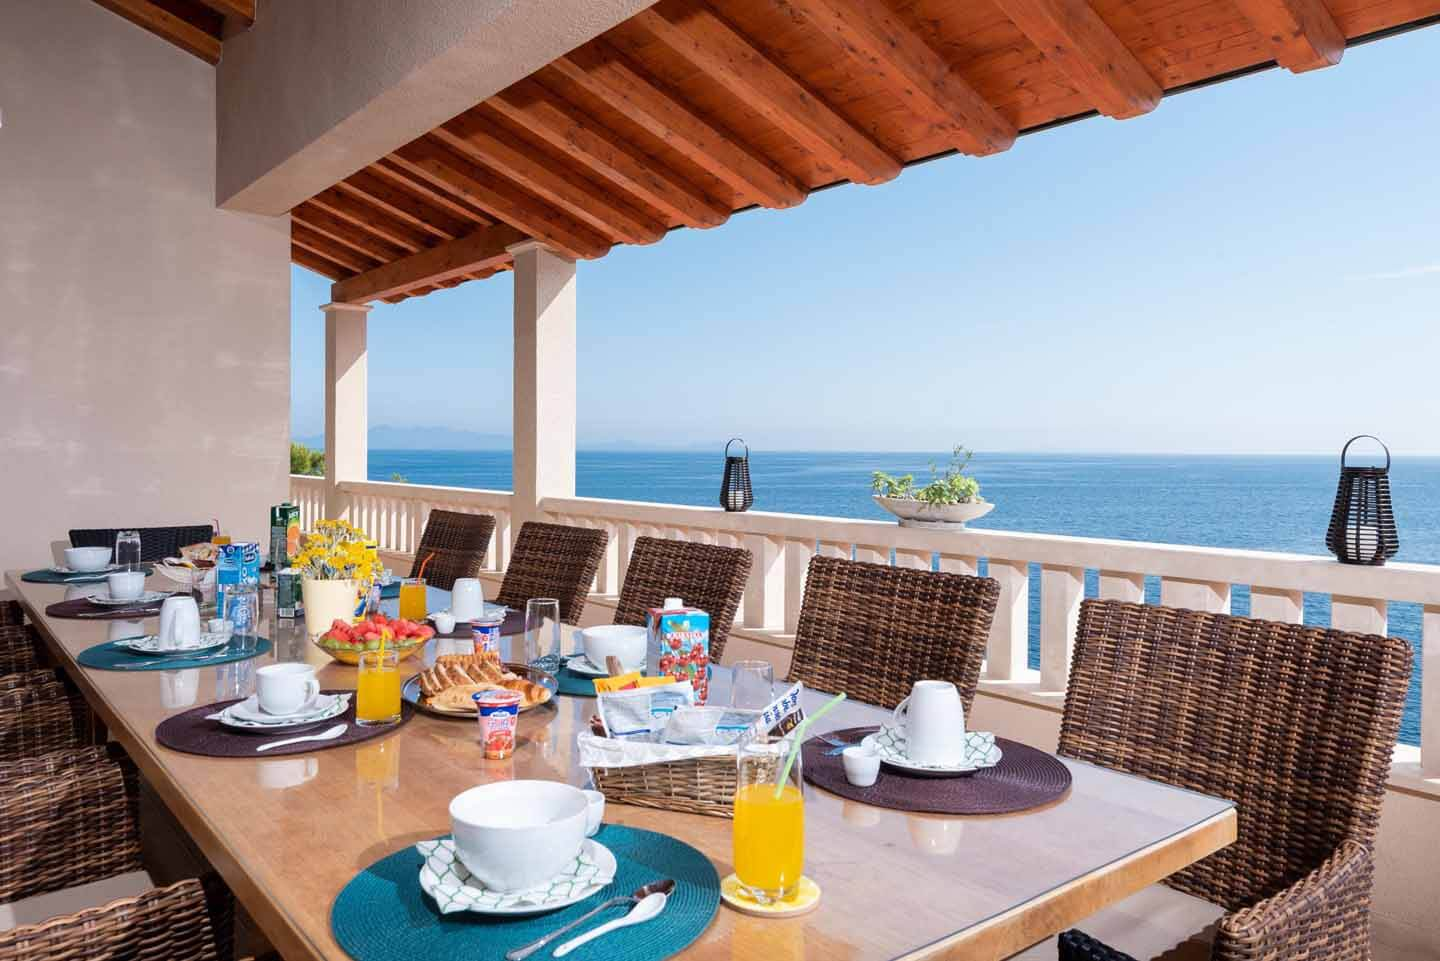 Al fresco dining sea view